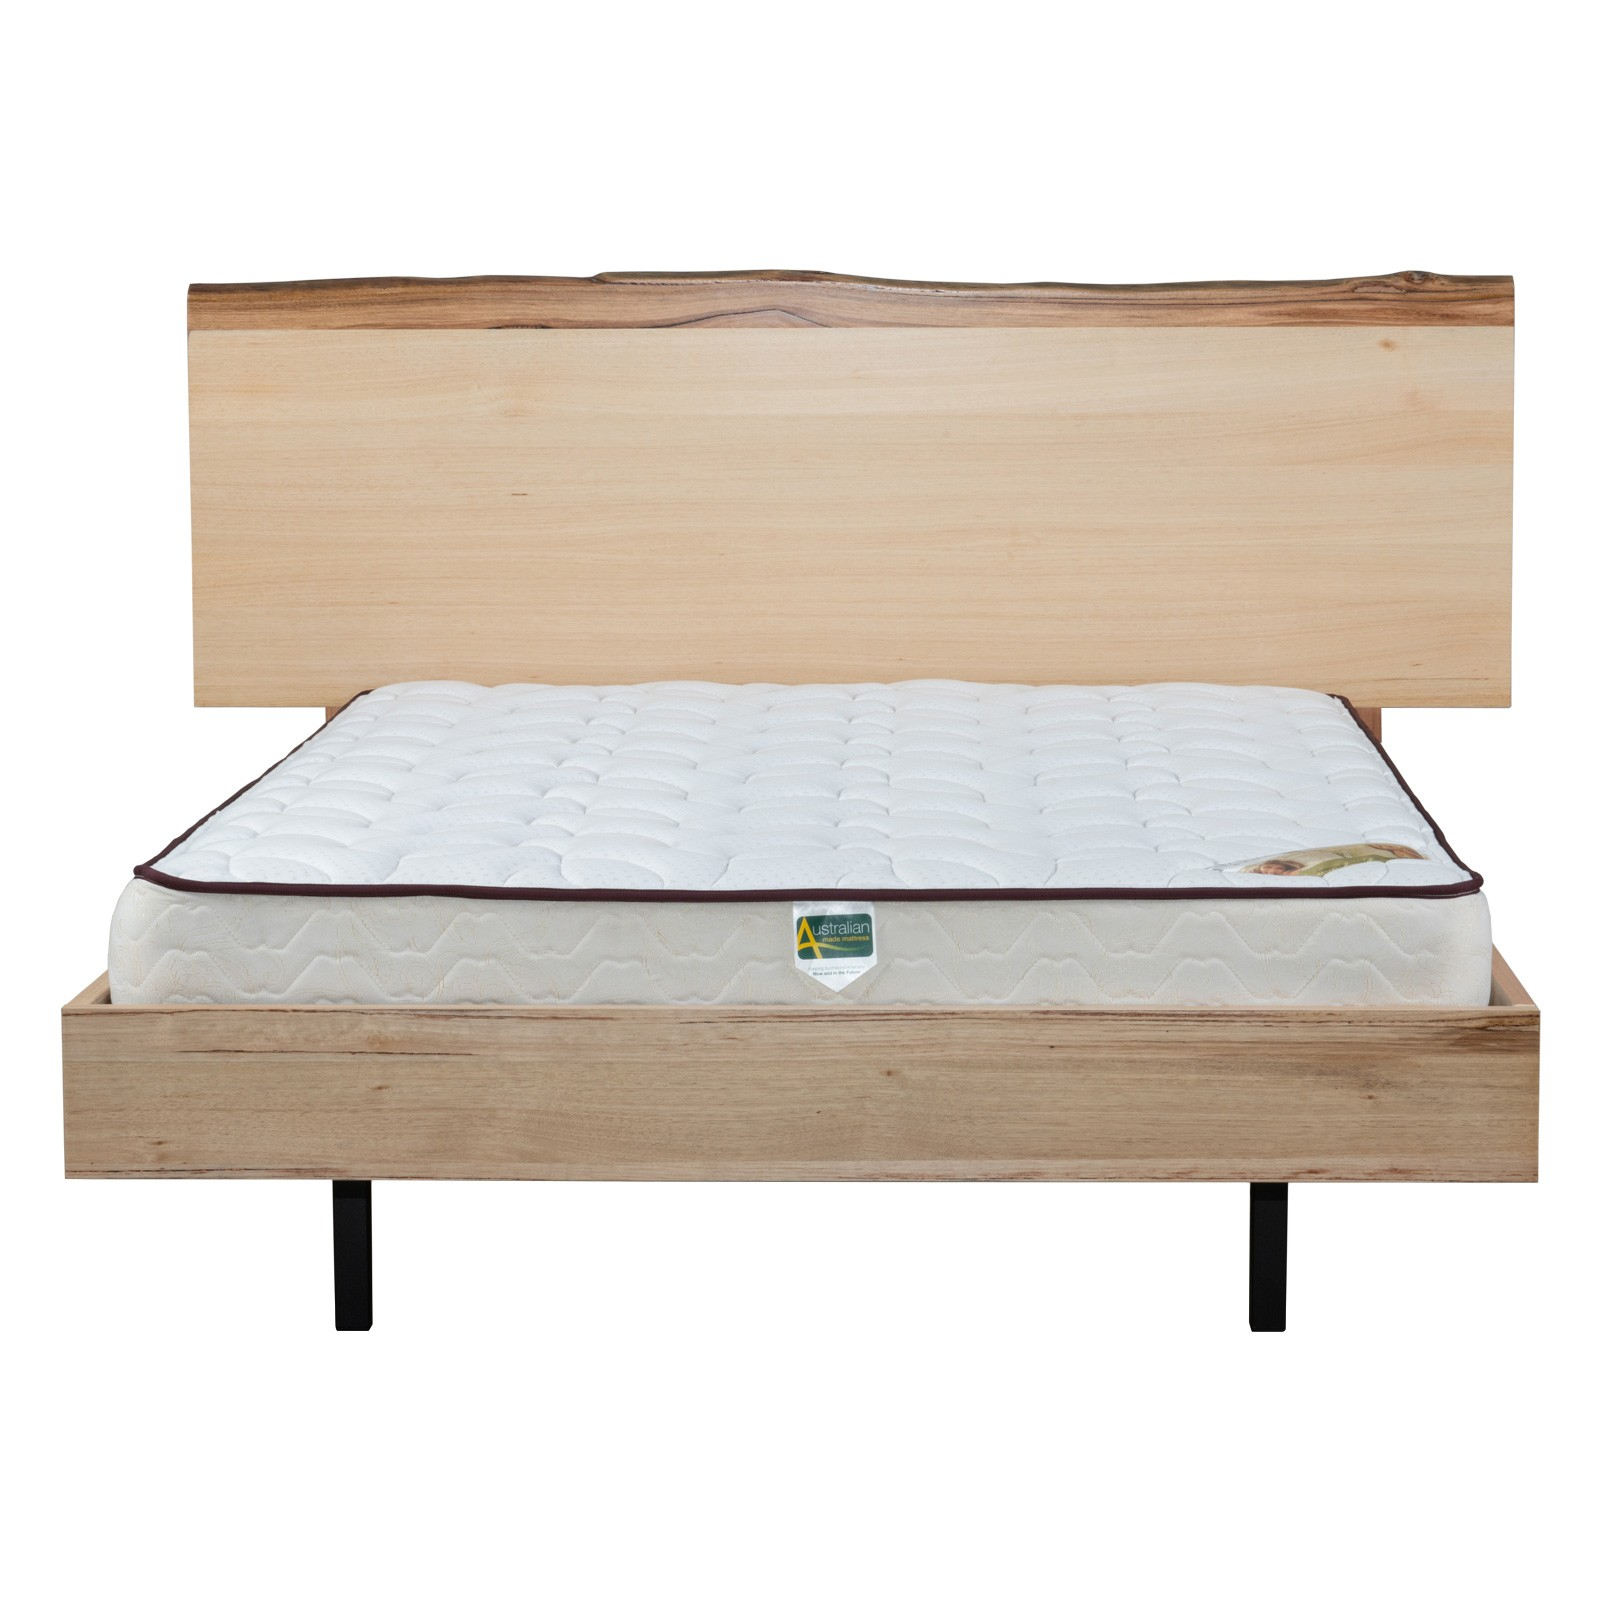 Jacob Messmate Timber Bed, Queen